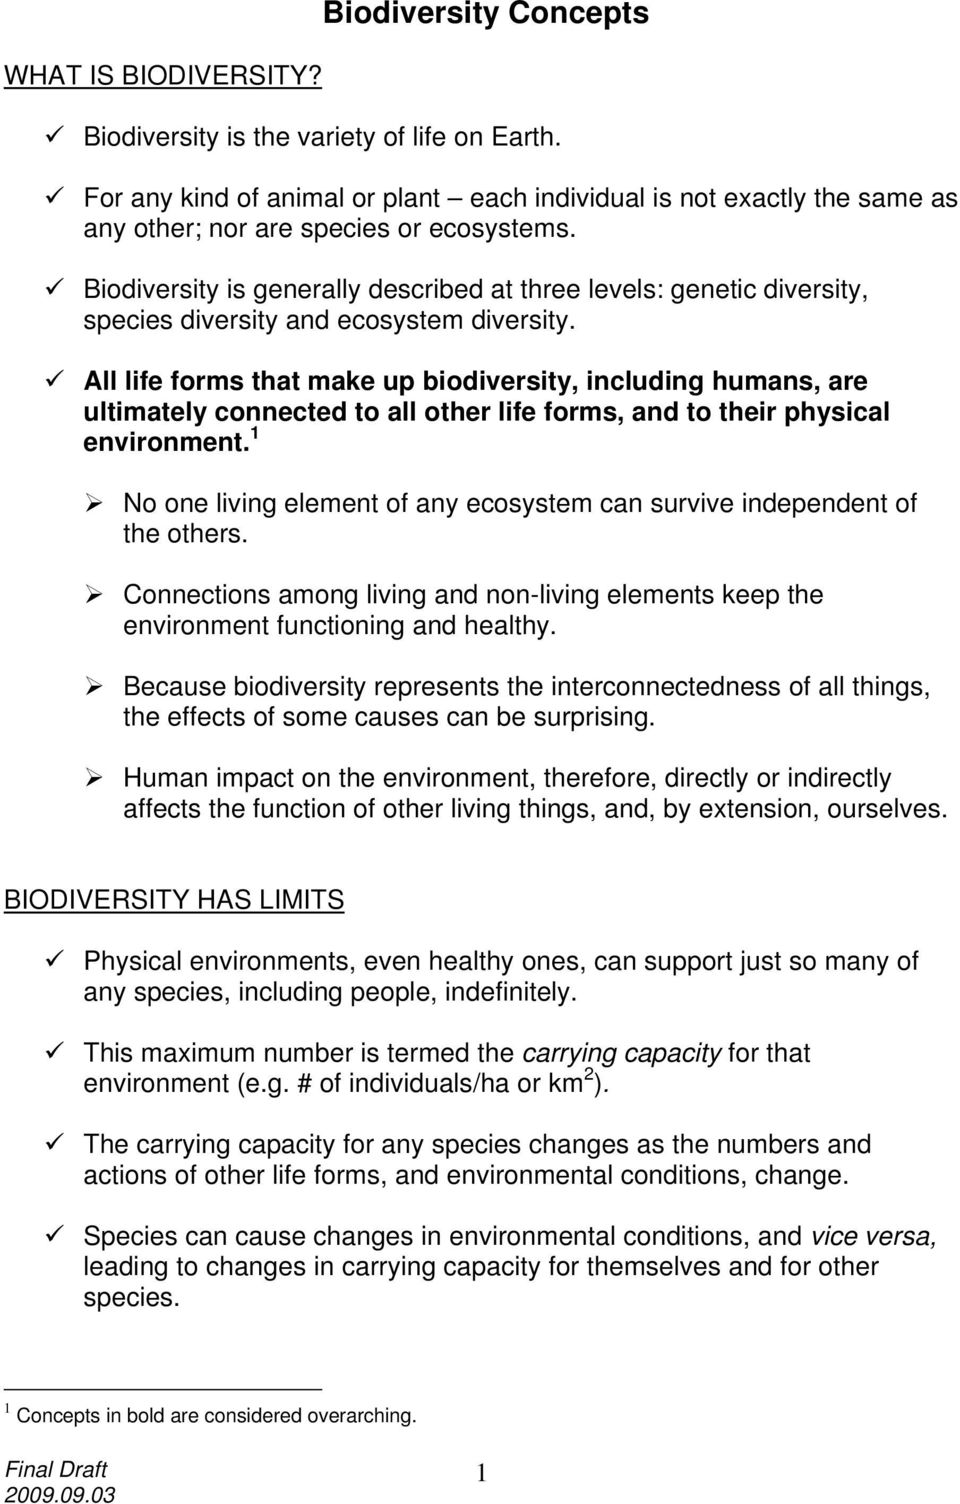 Biodiversity is generally described at three levels: genetic diversity, species diversity and ecosystem diversity.